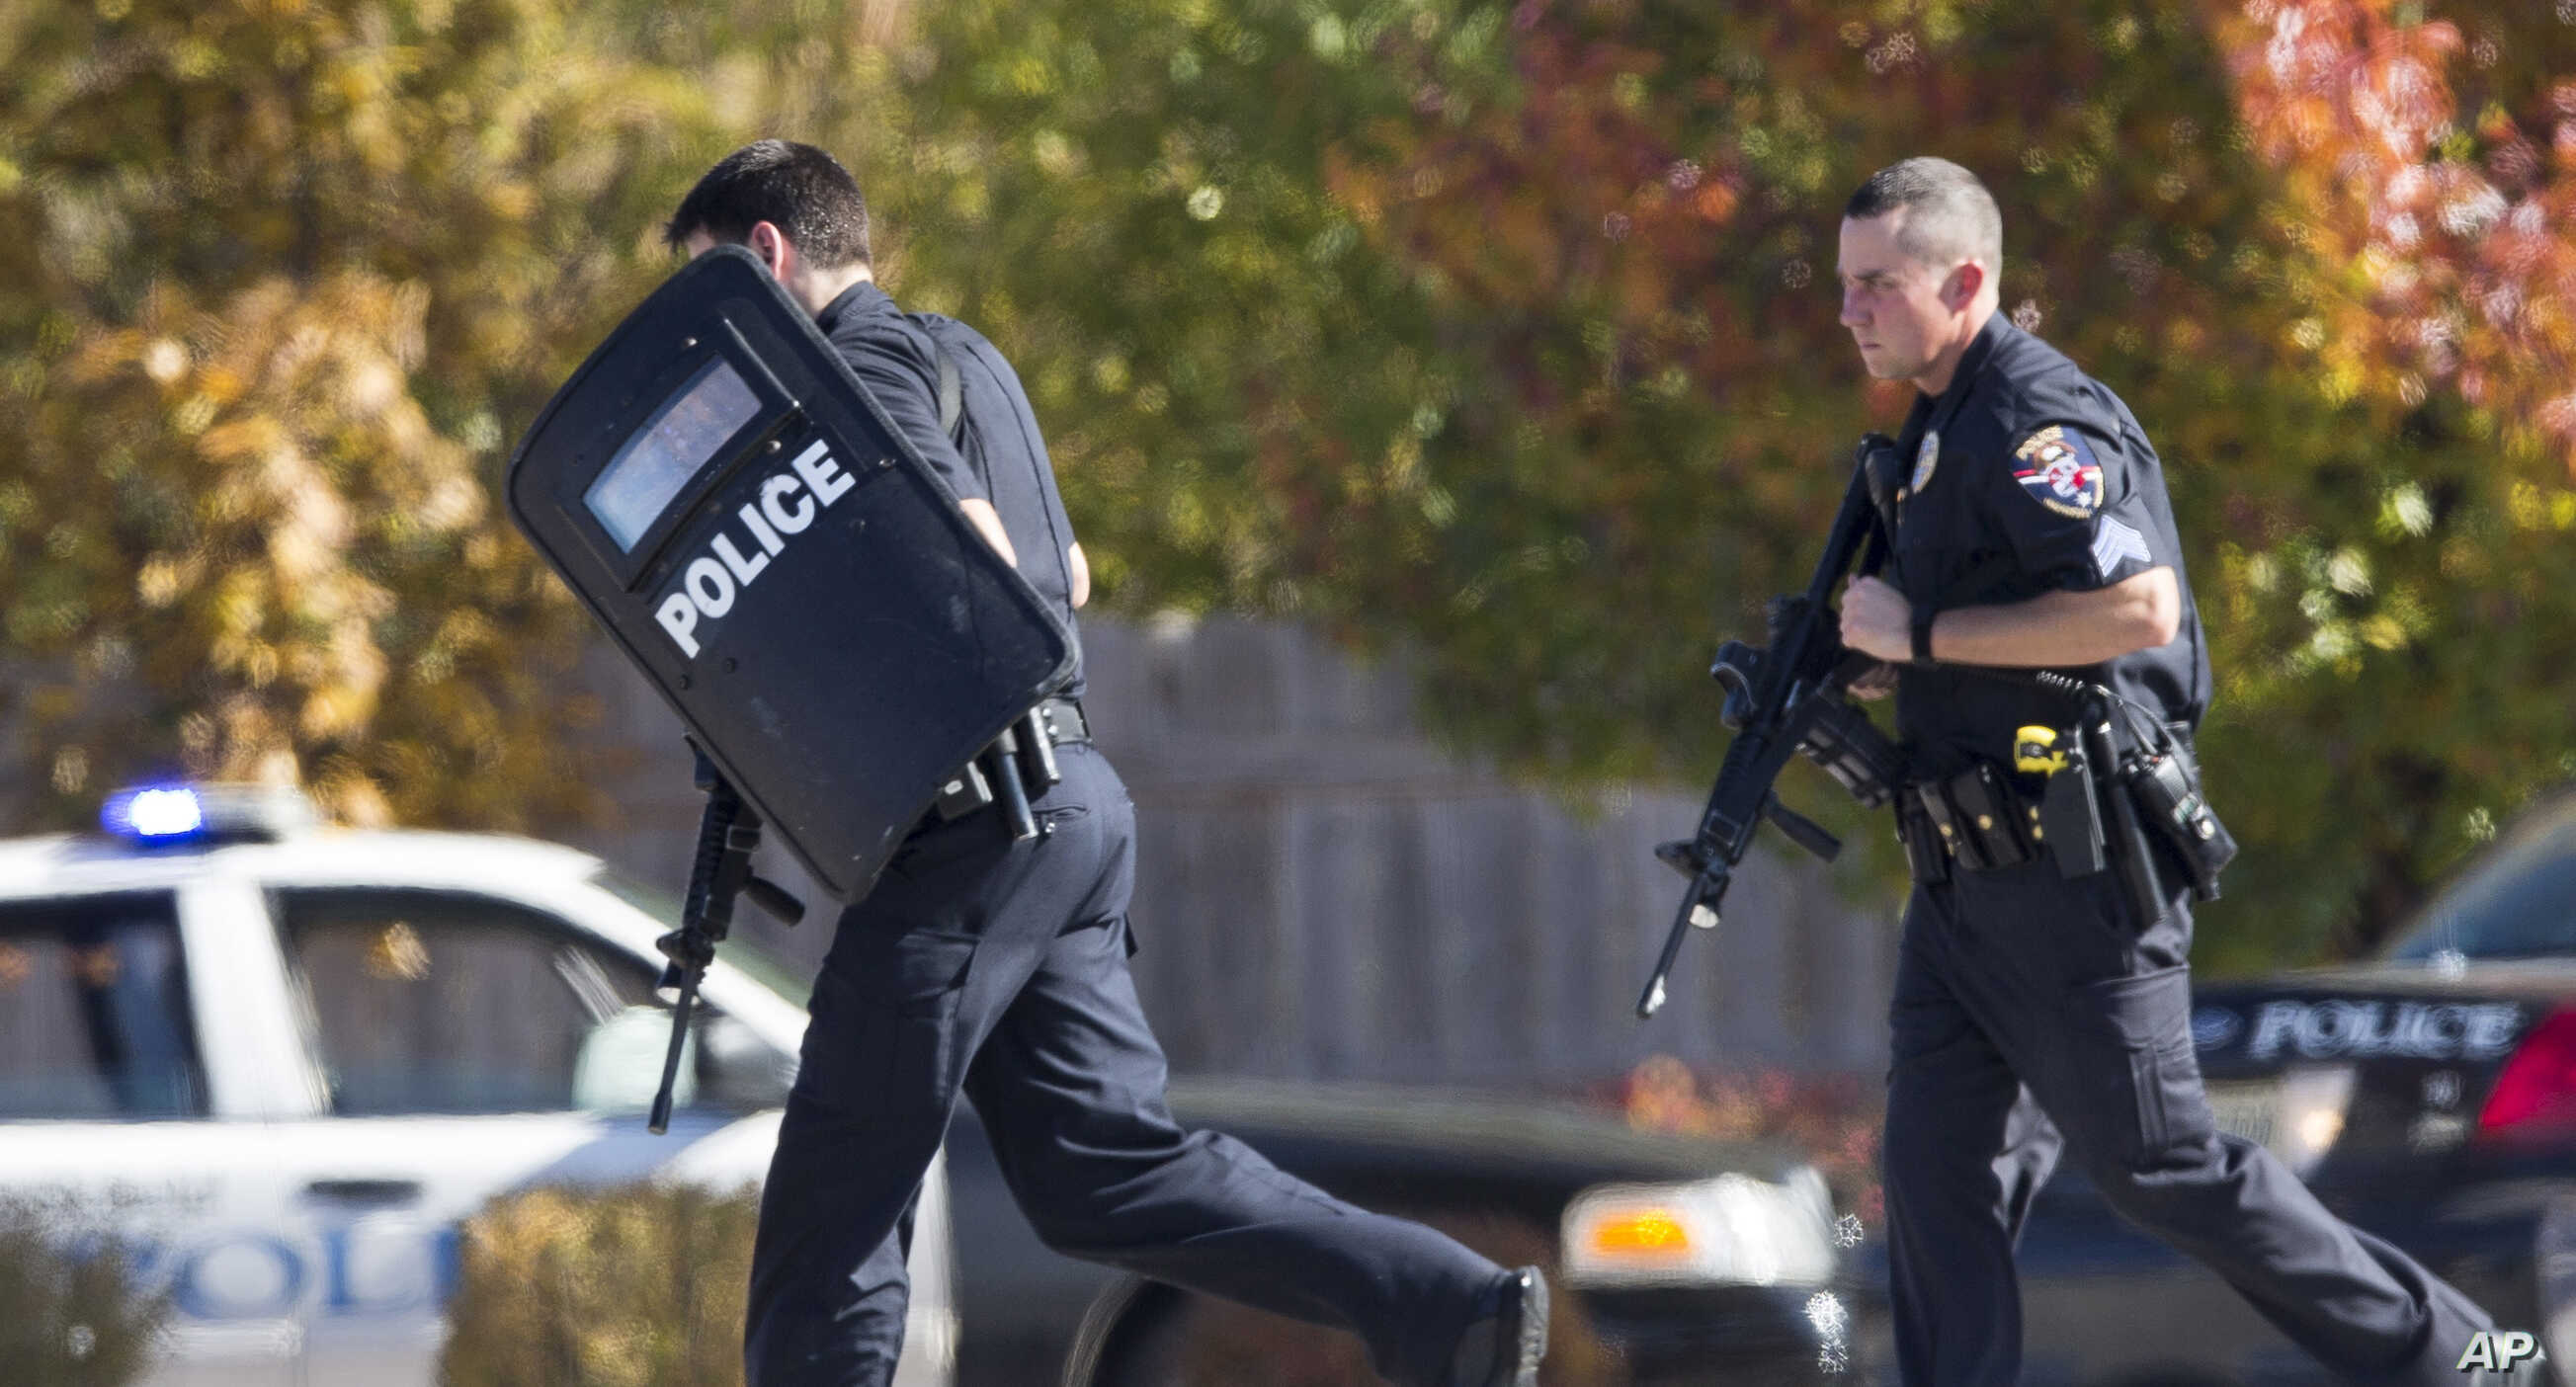 Police and swat team members respond to a call of a shooting at the Azana Spa in Brookfield, Wisconsin on Sunday,Oct. 21, 2012.